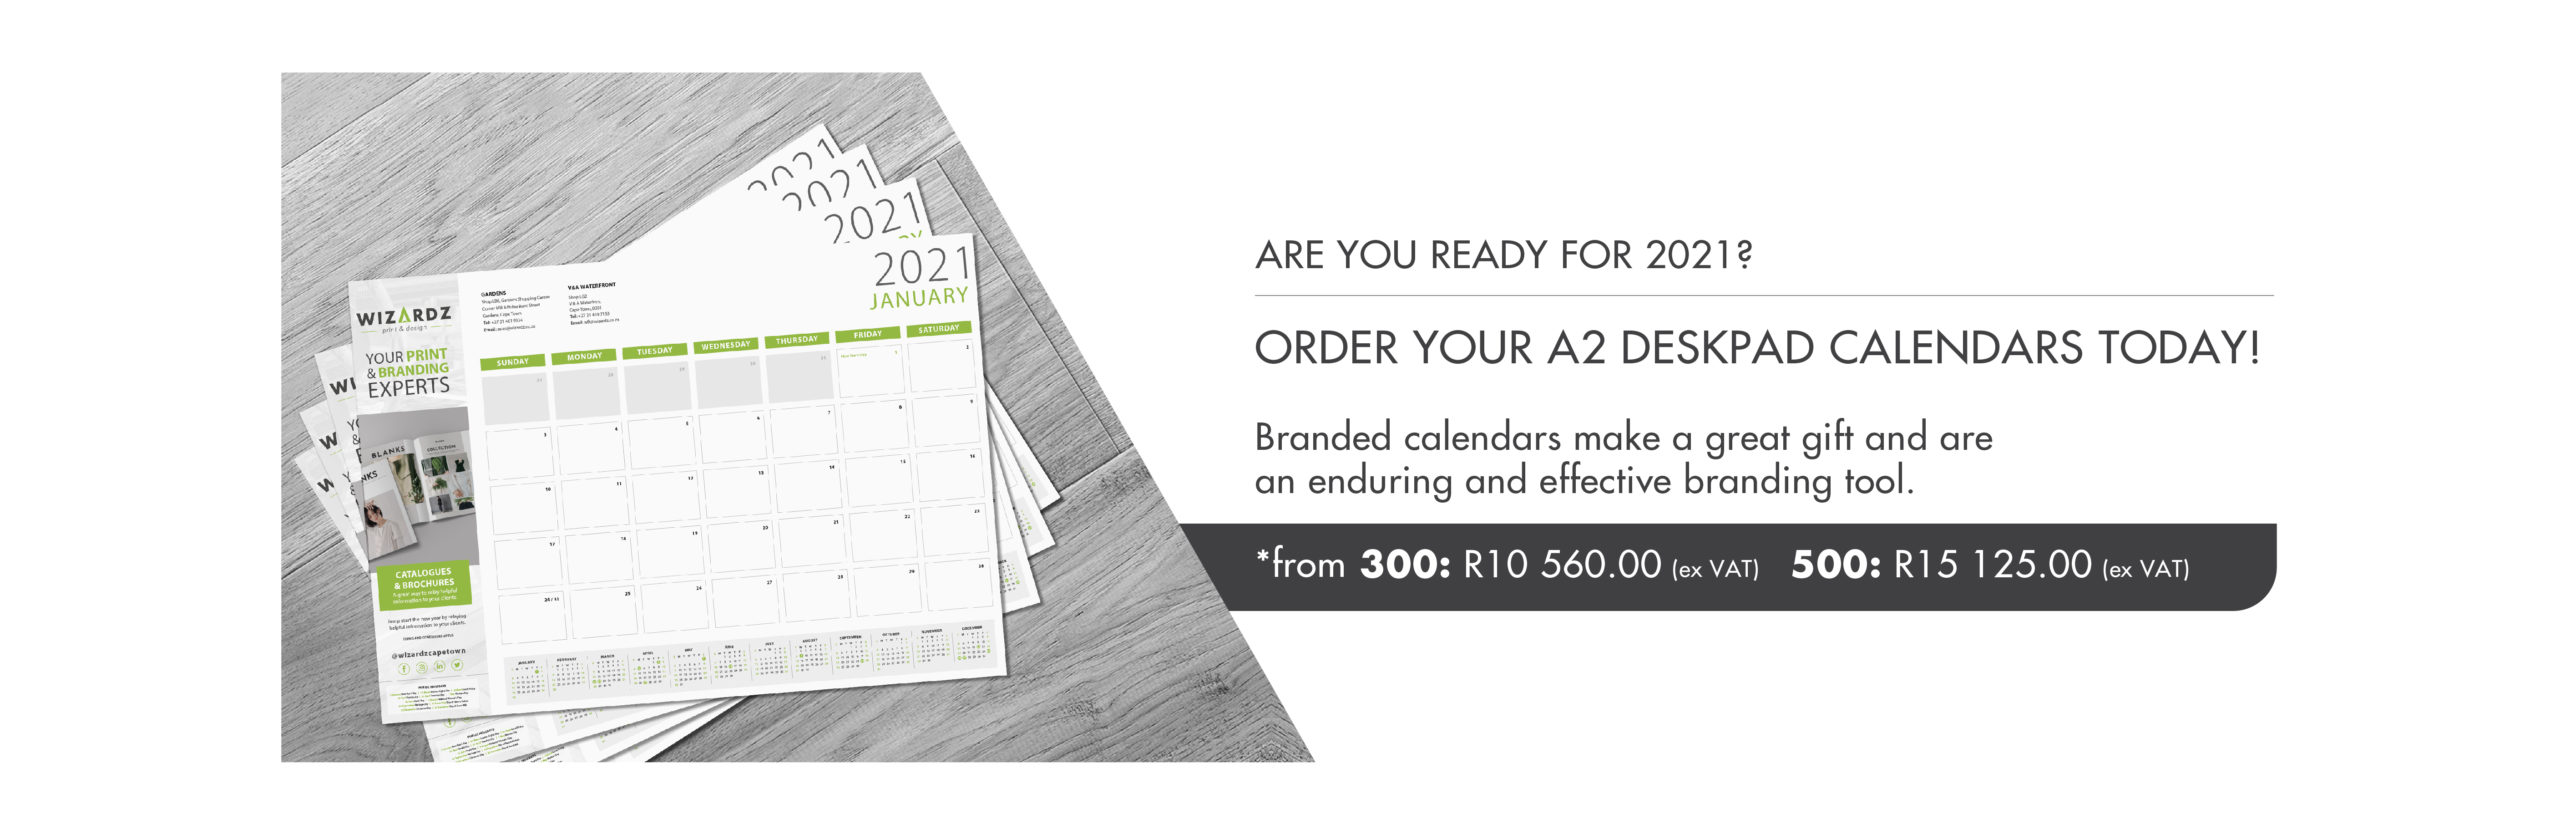 Deskpad Calendar Promotions Website Banner